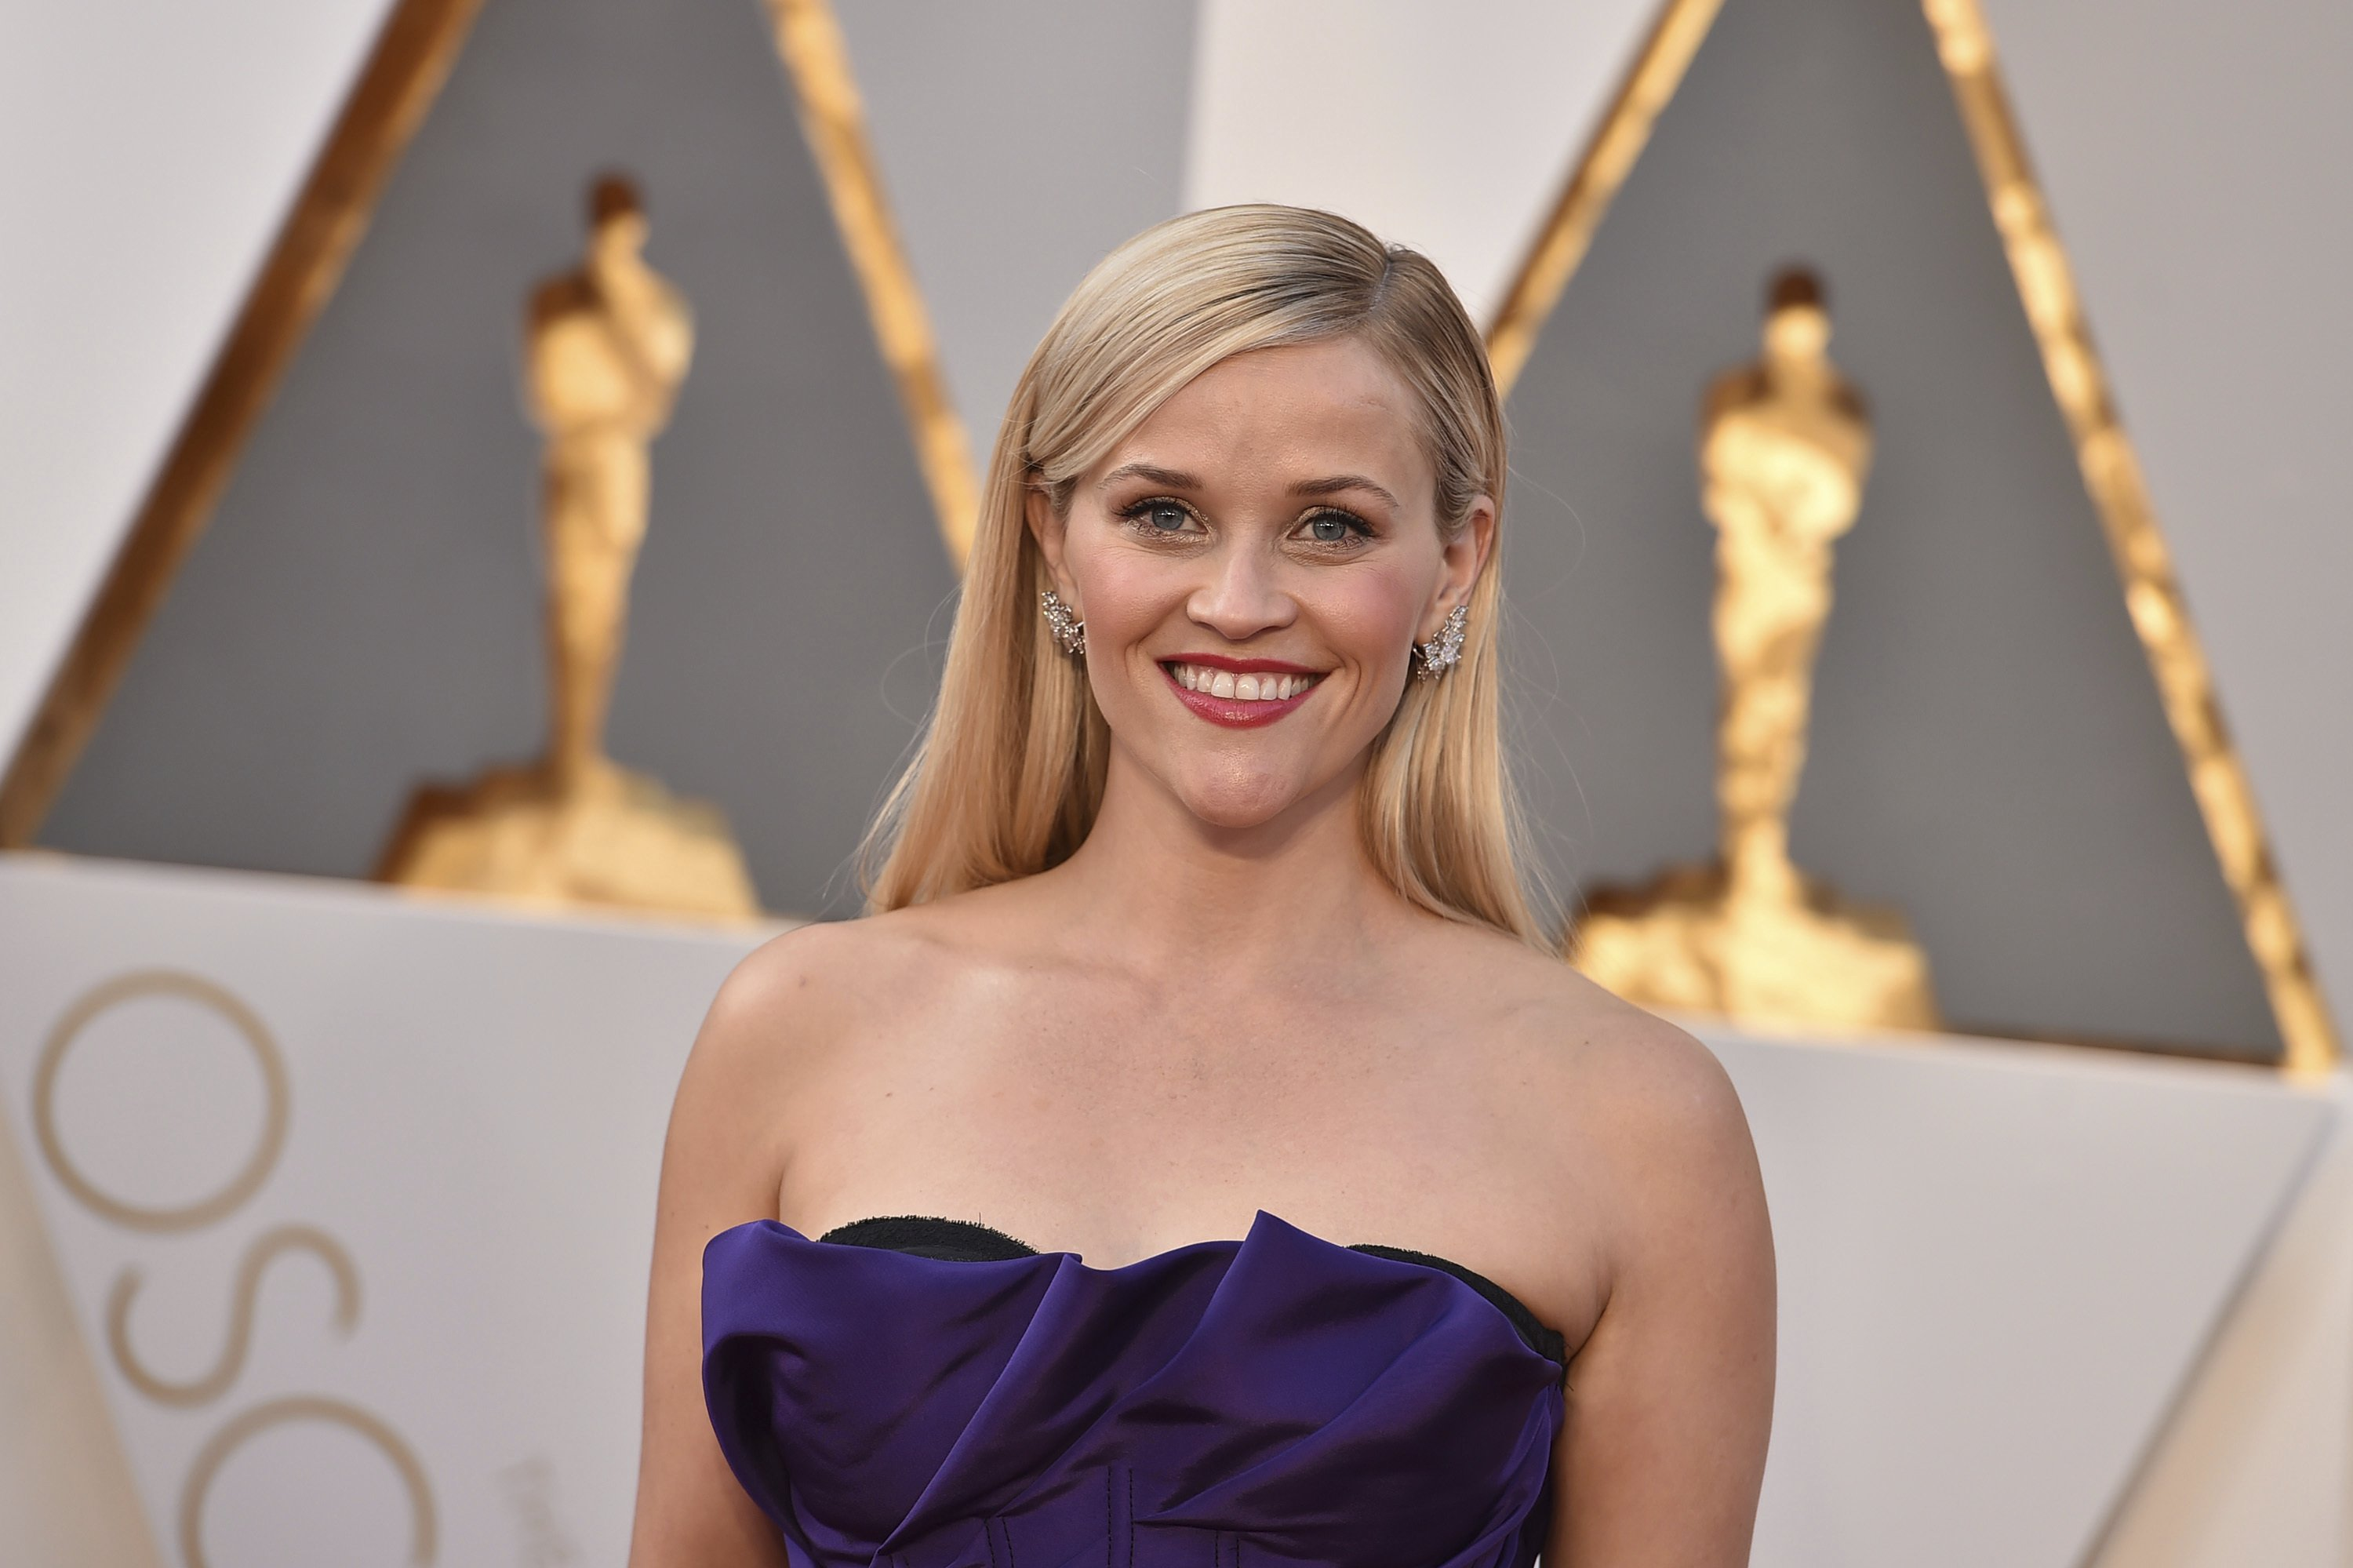 Reese Witherspoon working on lifestyle book